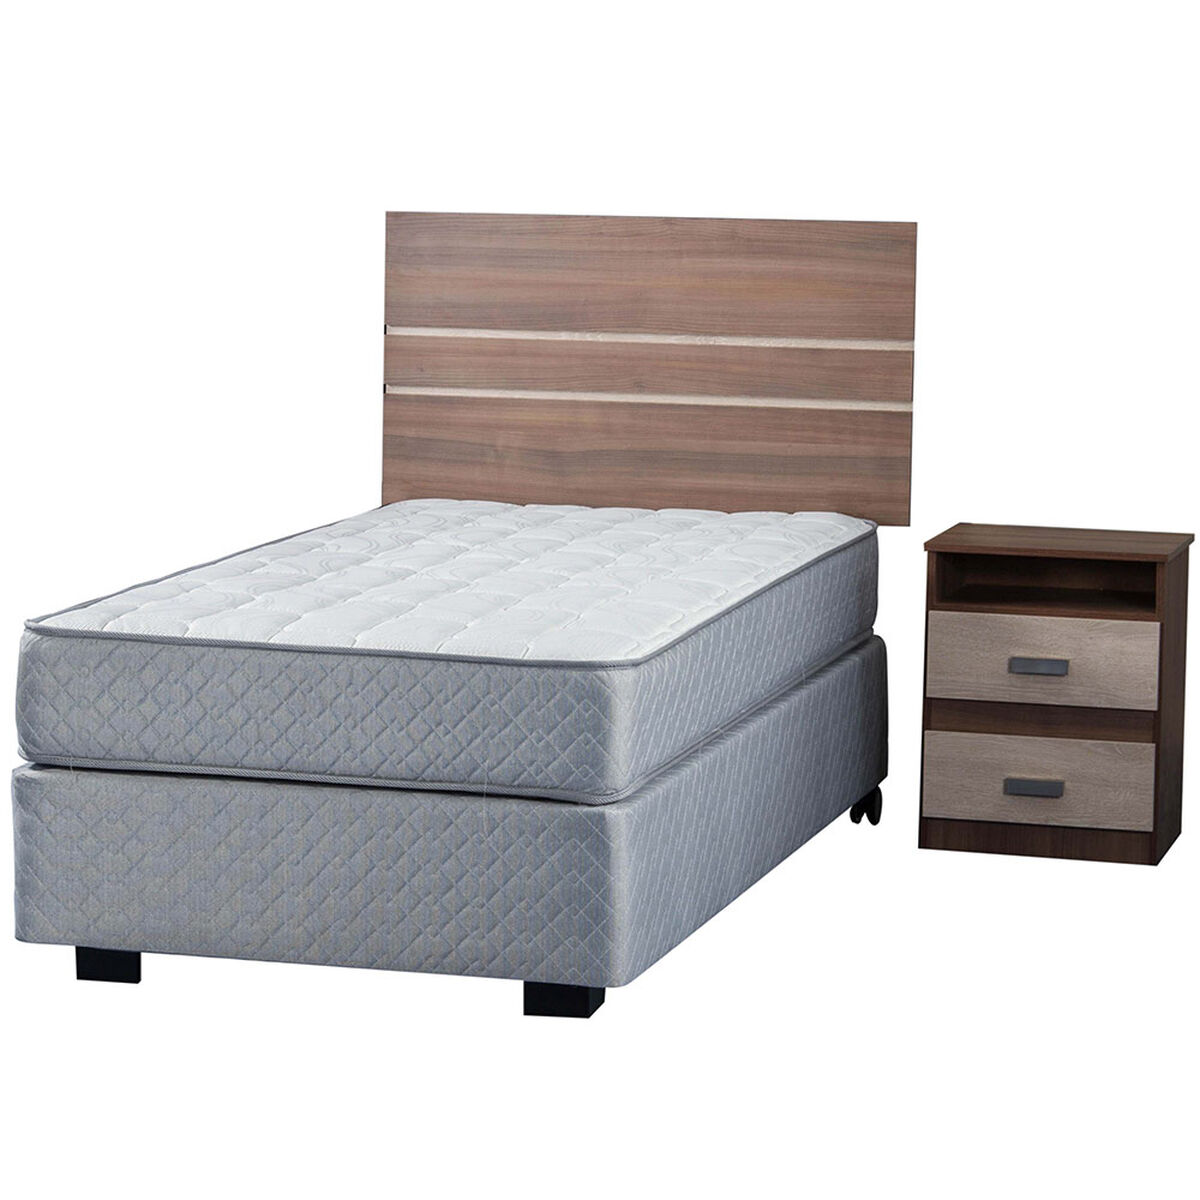 Box Spring Therapedic 1,5 Pl Flex + Muebles Milano